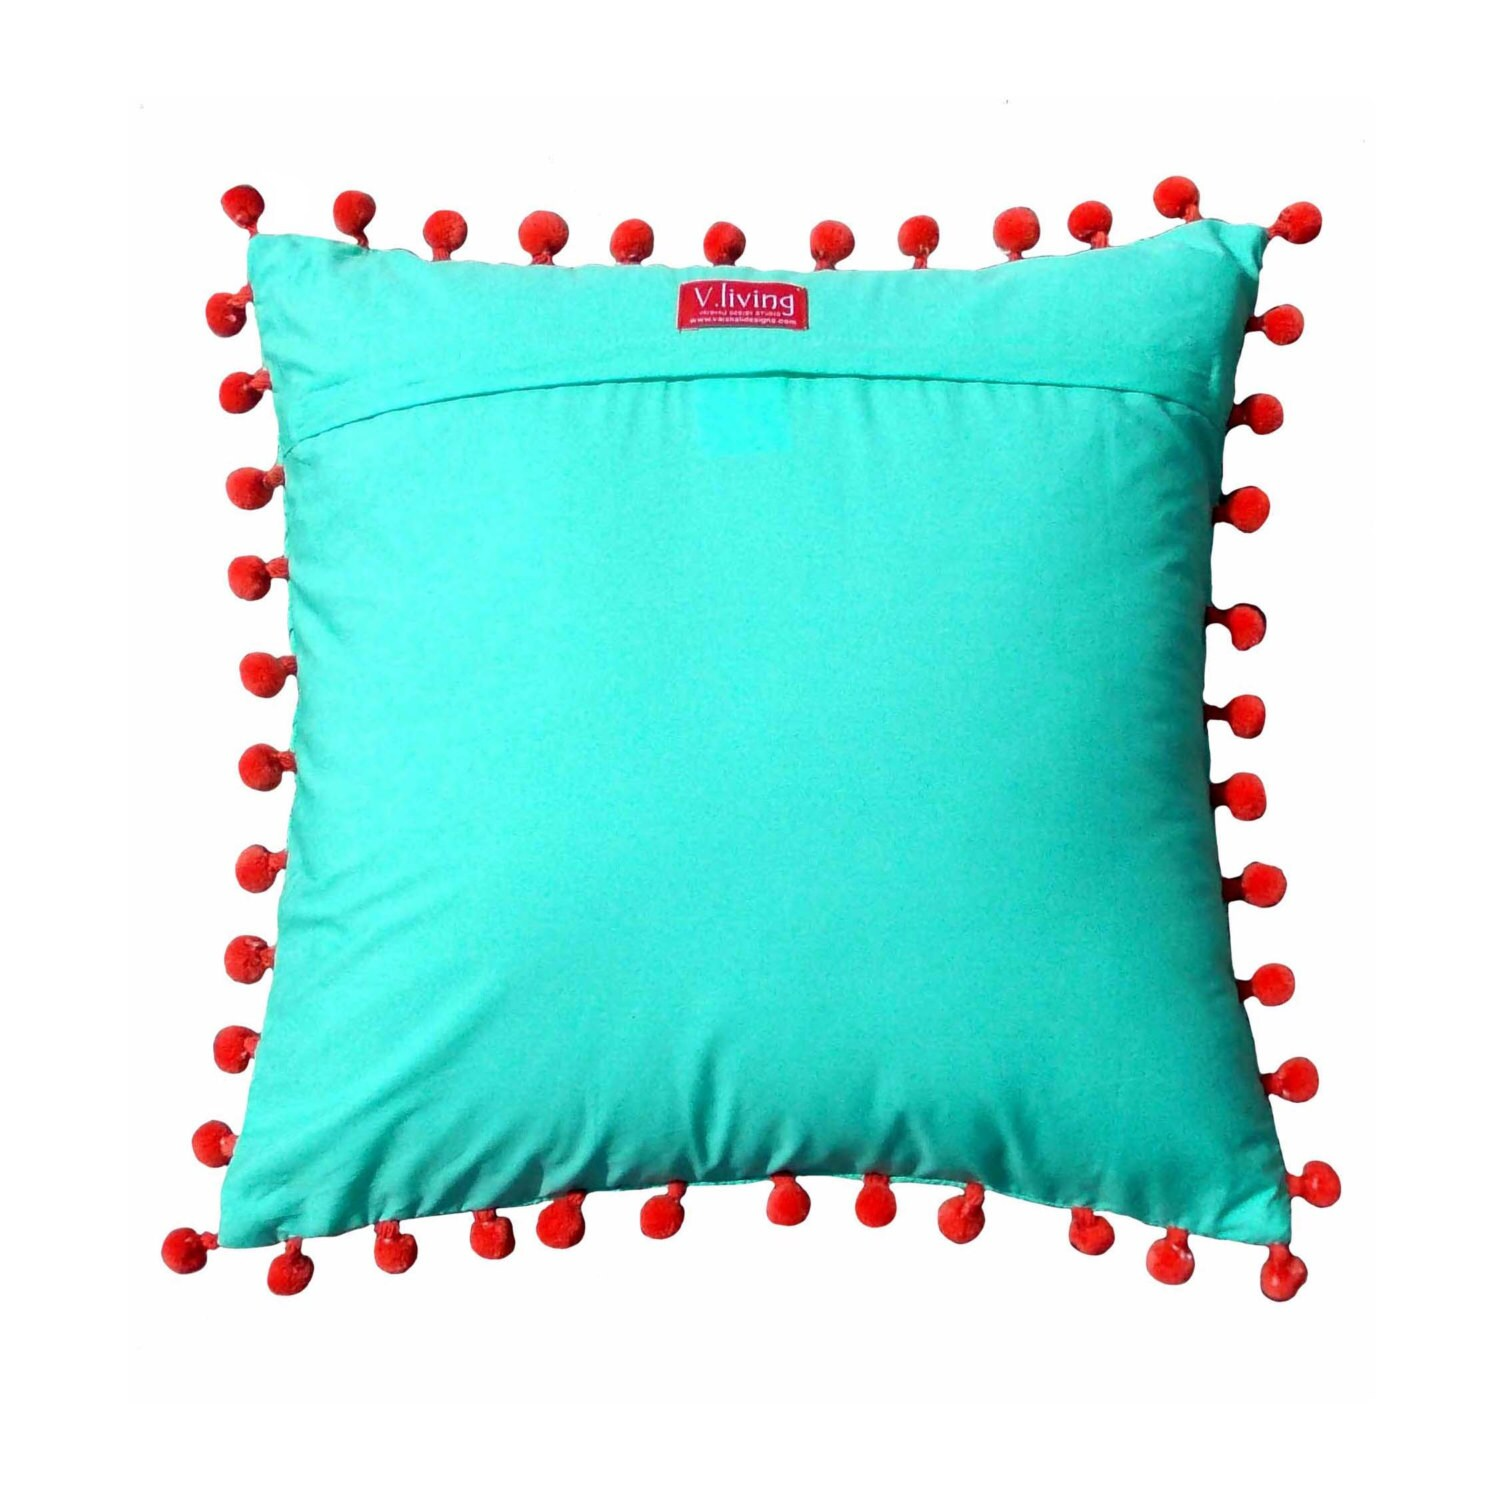 Quilted Decorative Pillow Covers : Mint throw pillow cover quilted cotton pillow cover by VLiving